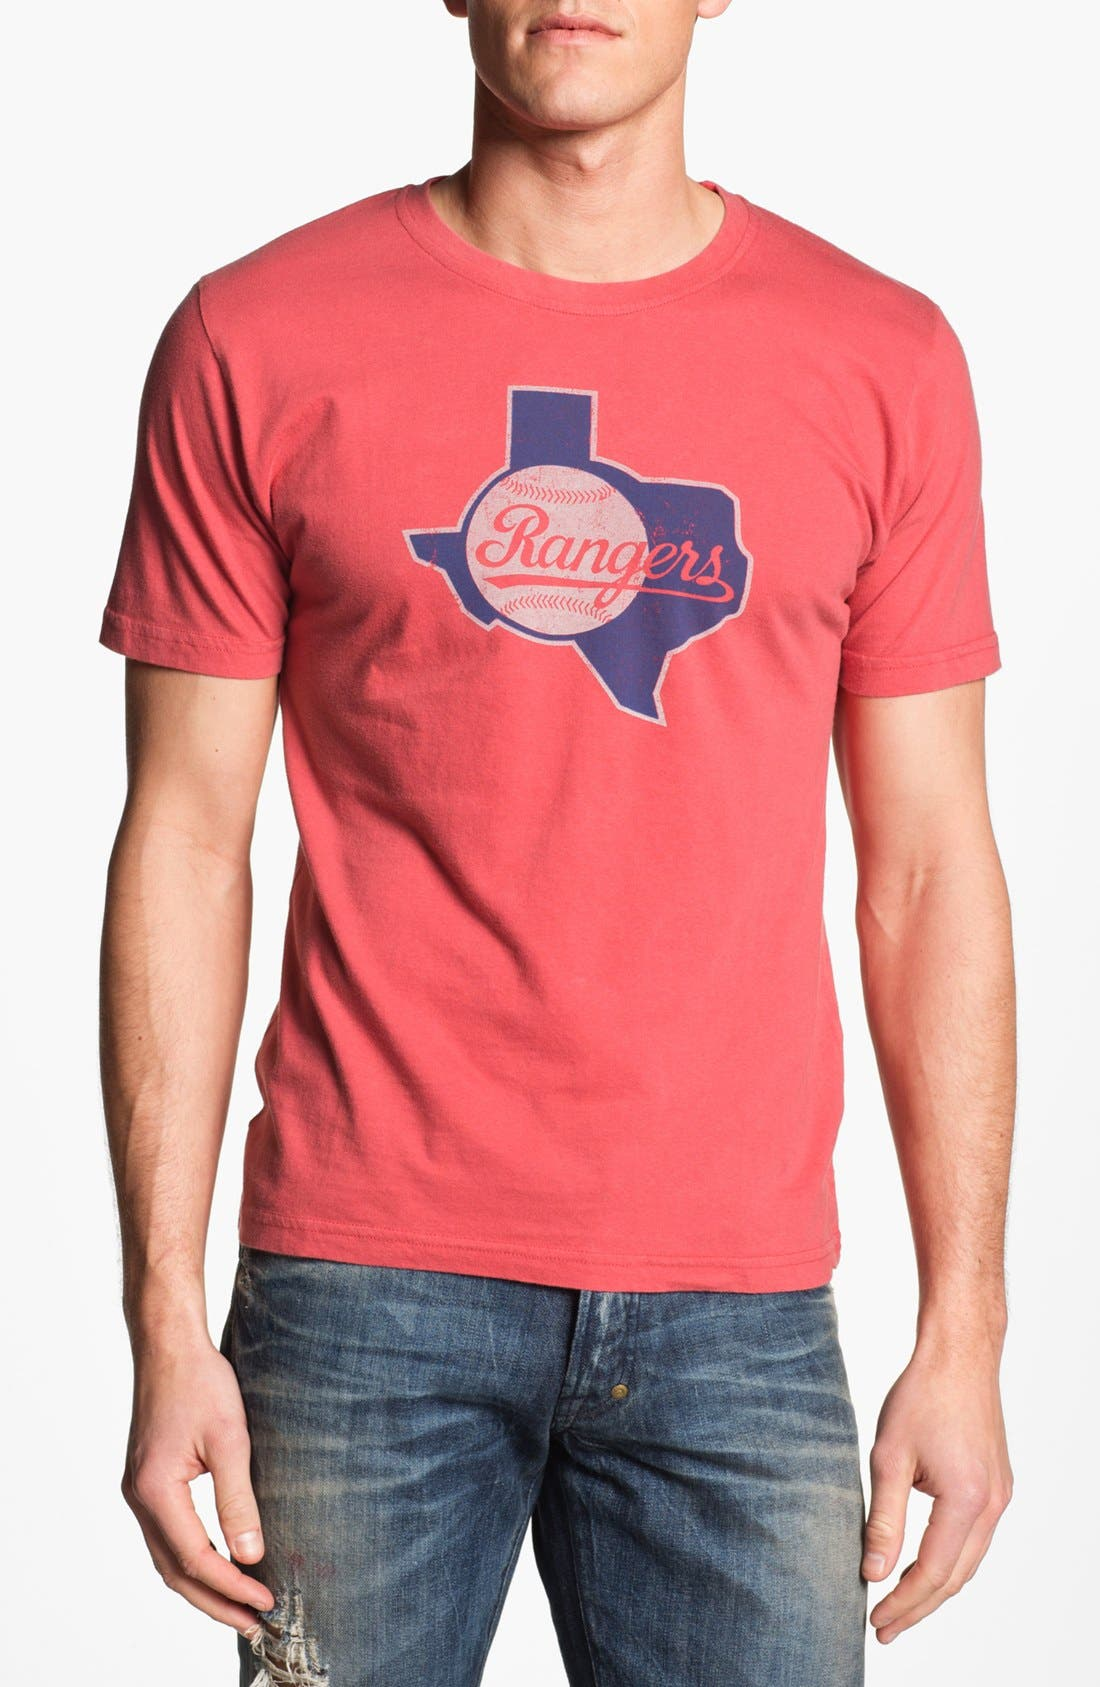 Red Jacket 'Texas Rangers' T-Shirt (Men)